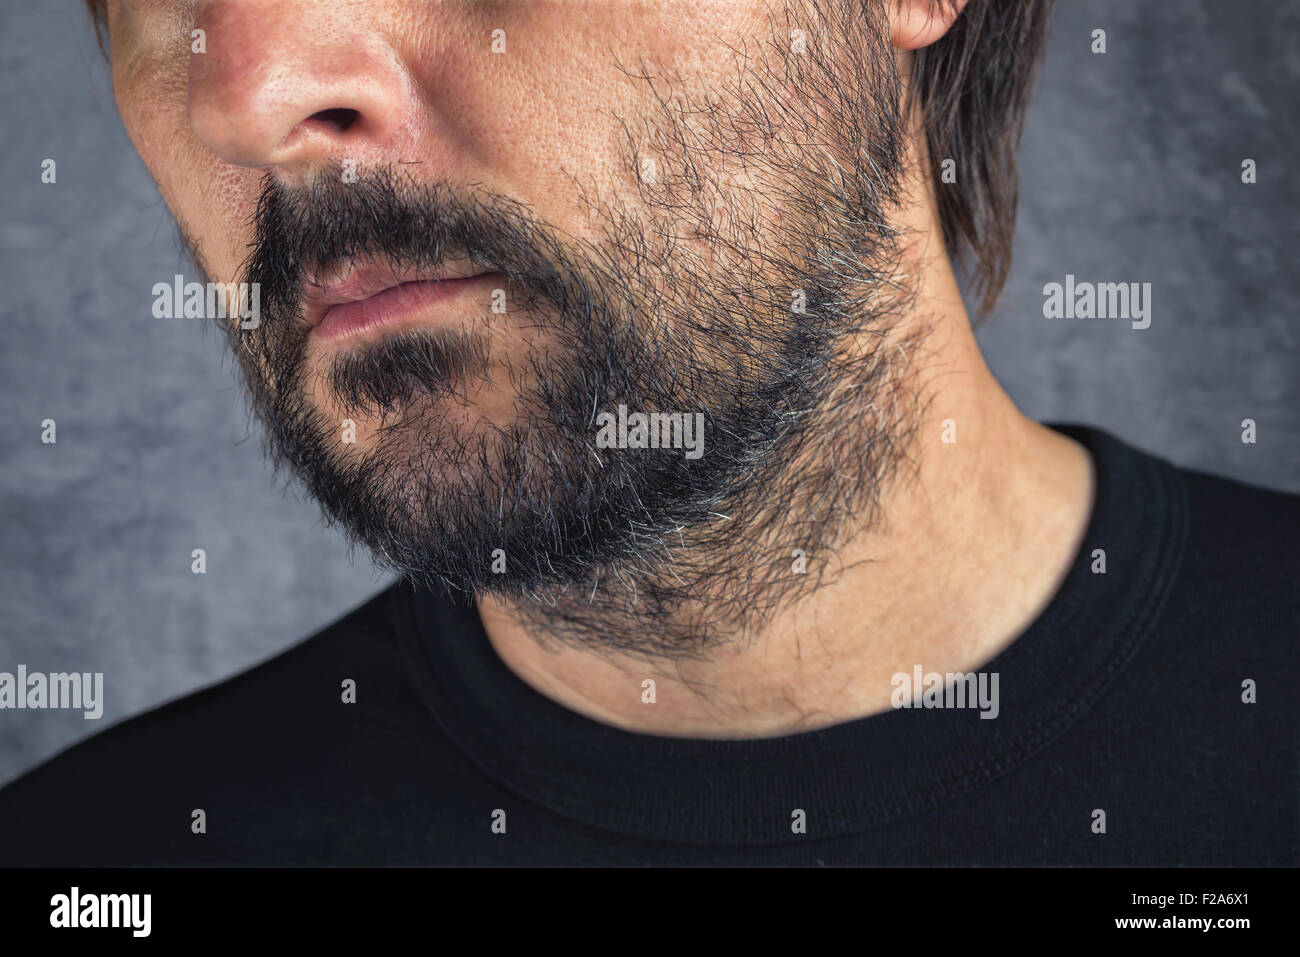 Male facial hair, adult caucasian man with beard - Stock Image